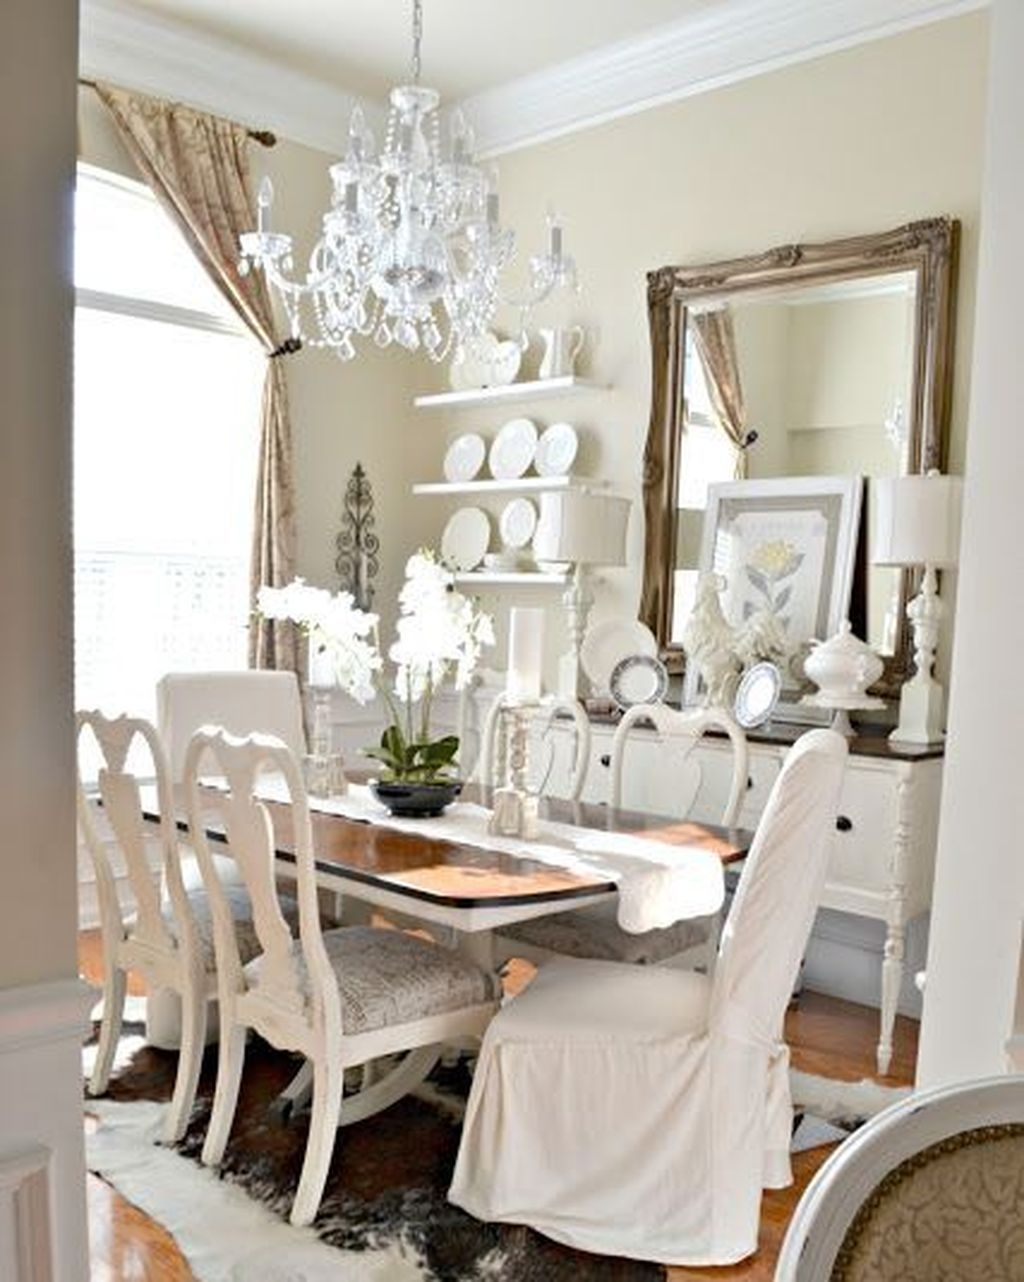 Cool 49 Stylish Large Decorative Mirrors Ideas For Dining Room Dining Room Table Decor Mirror Dining Room Beautiful Dining Rooms